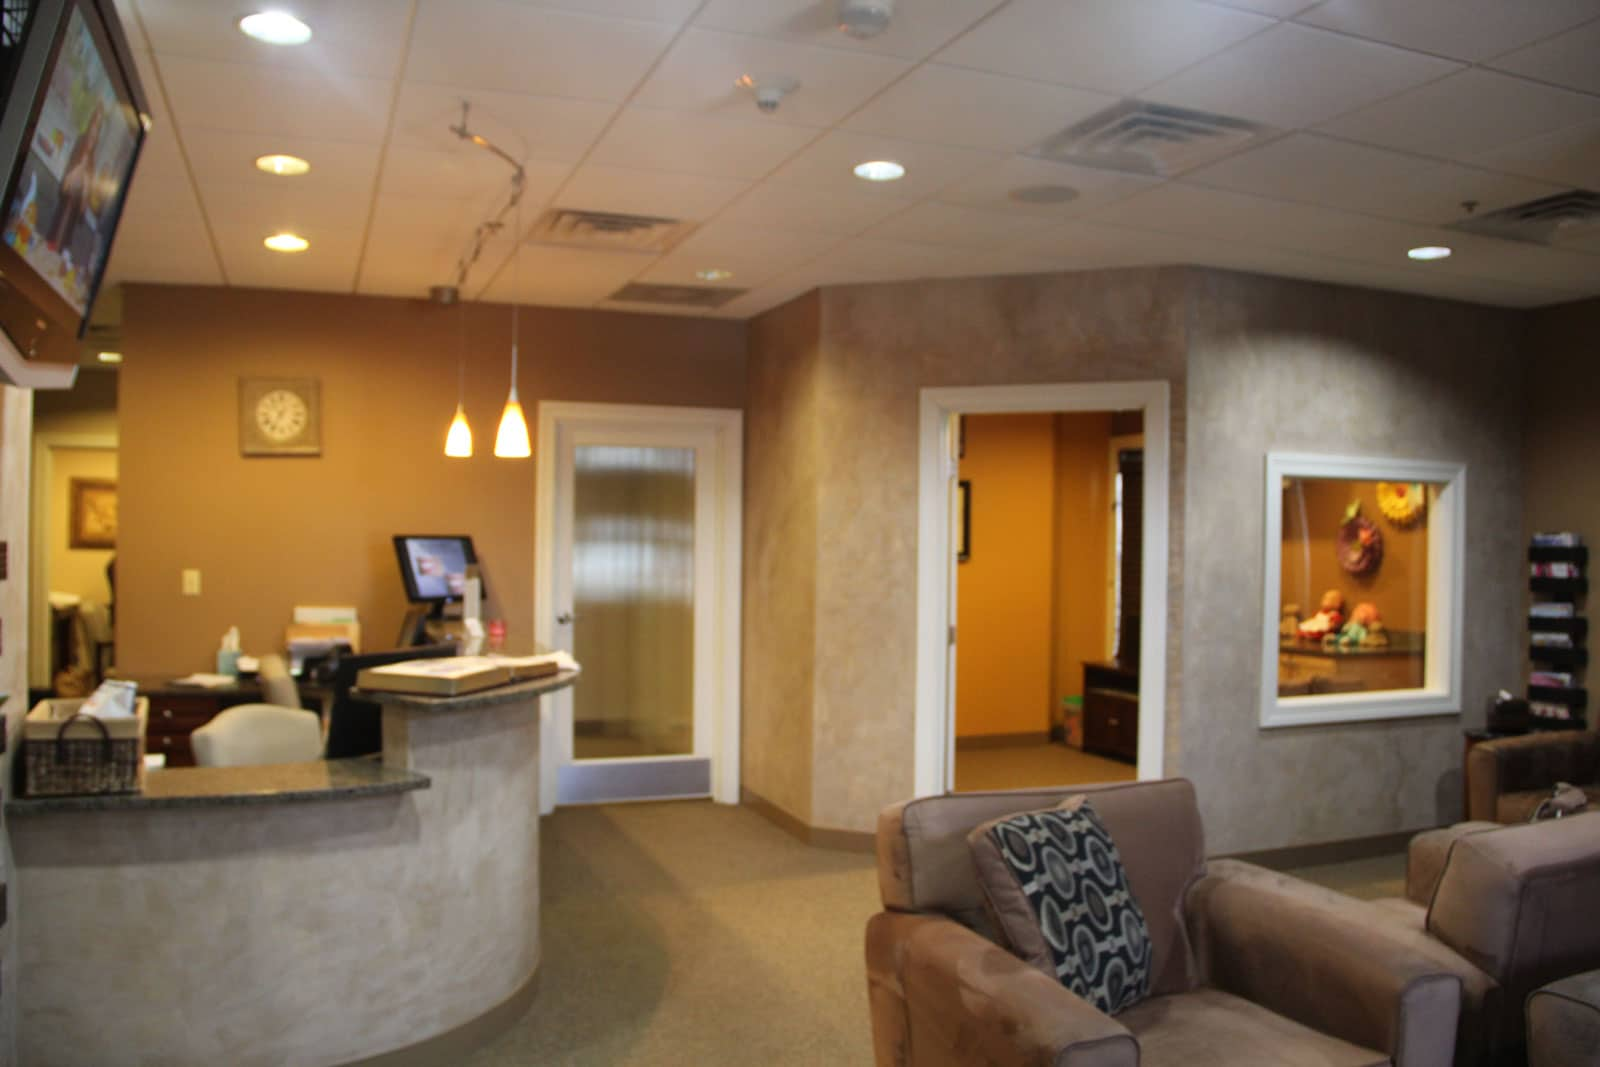 Dentist office in Libertyville